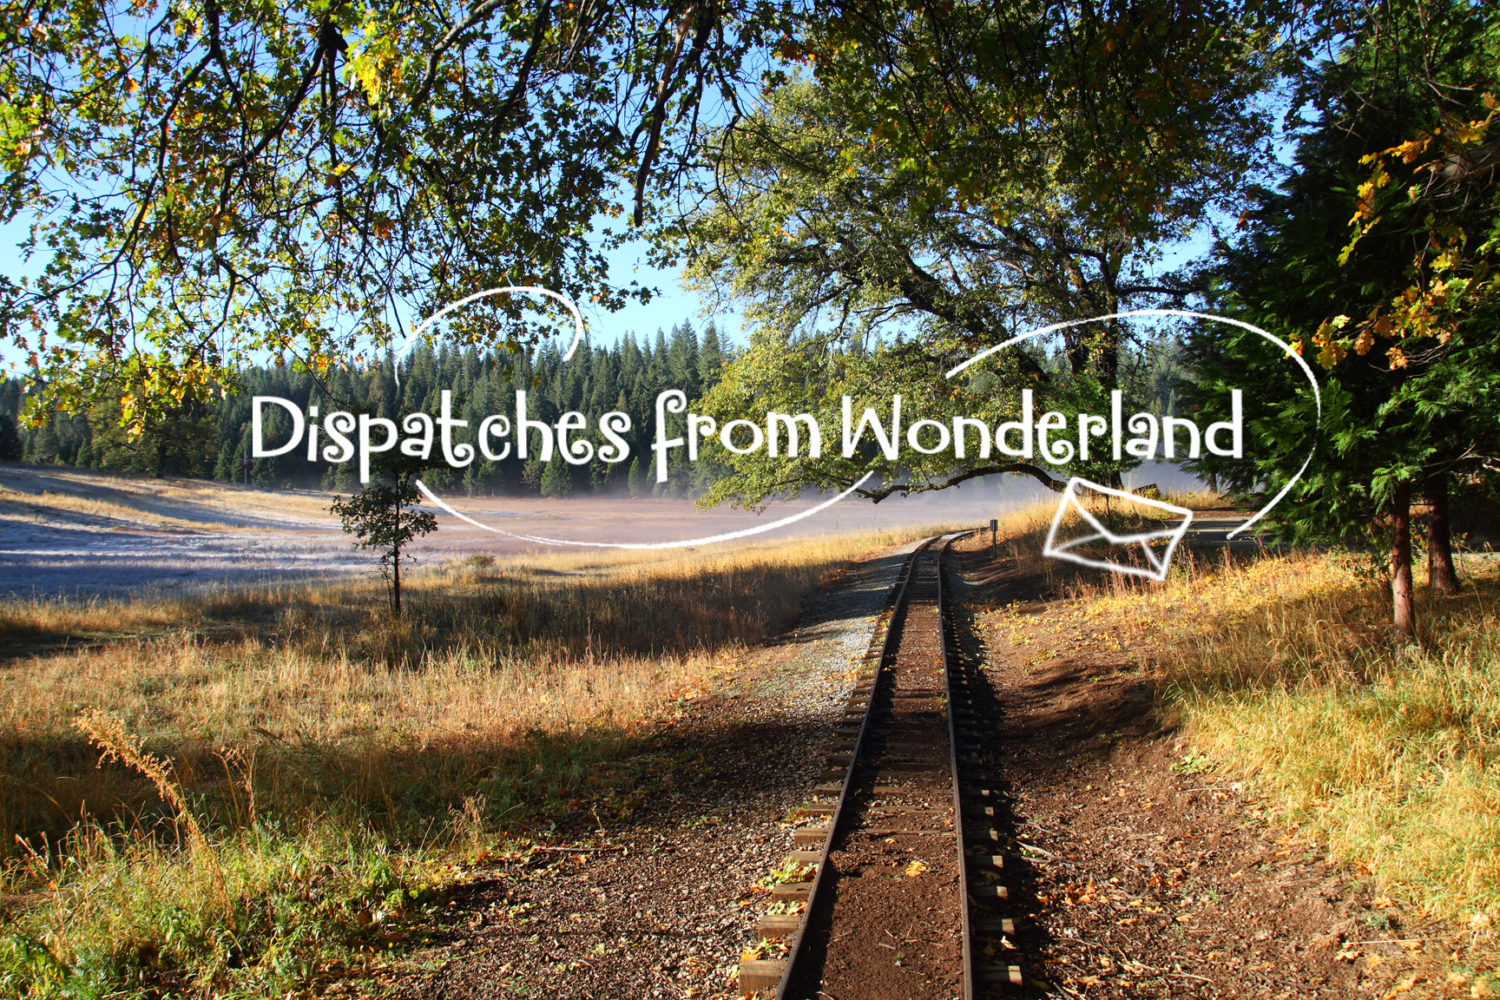 Dispatches From Wonderland